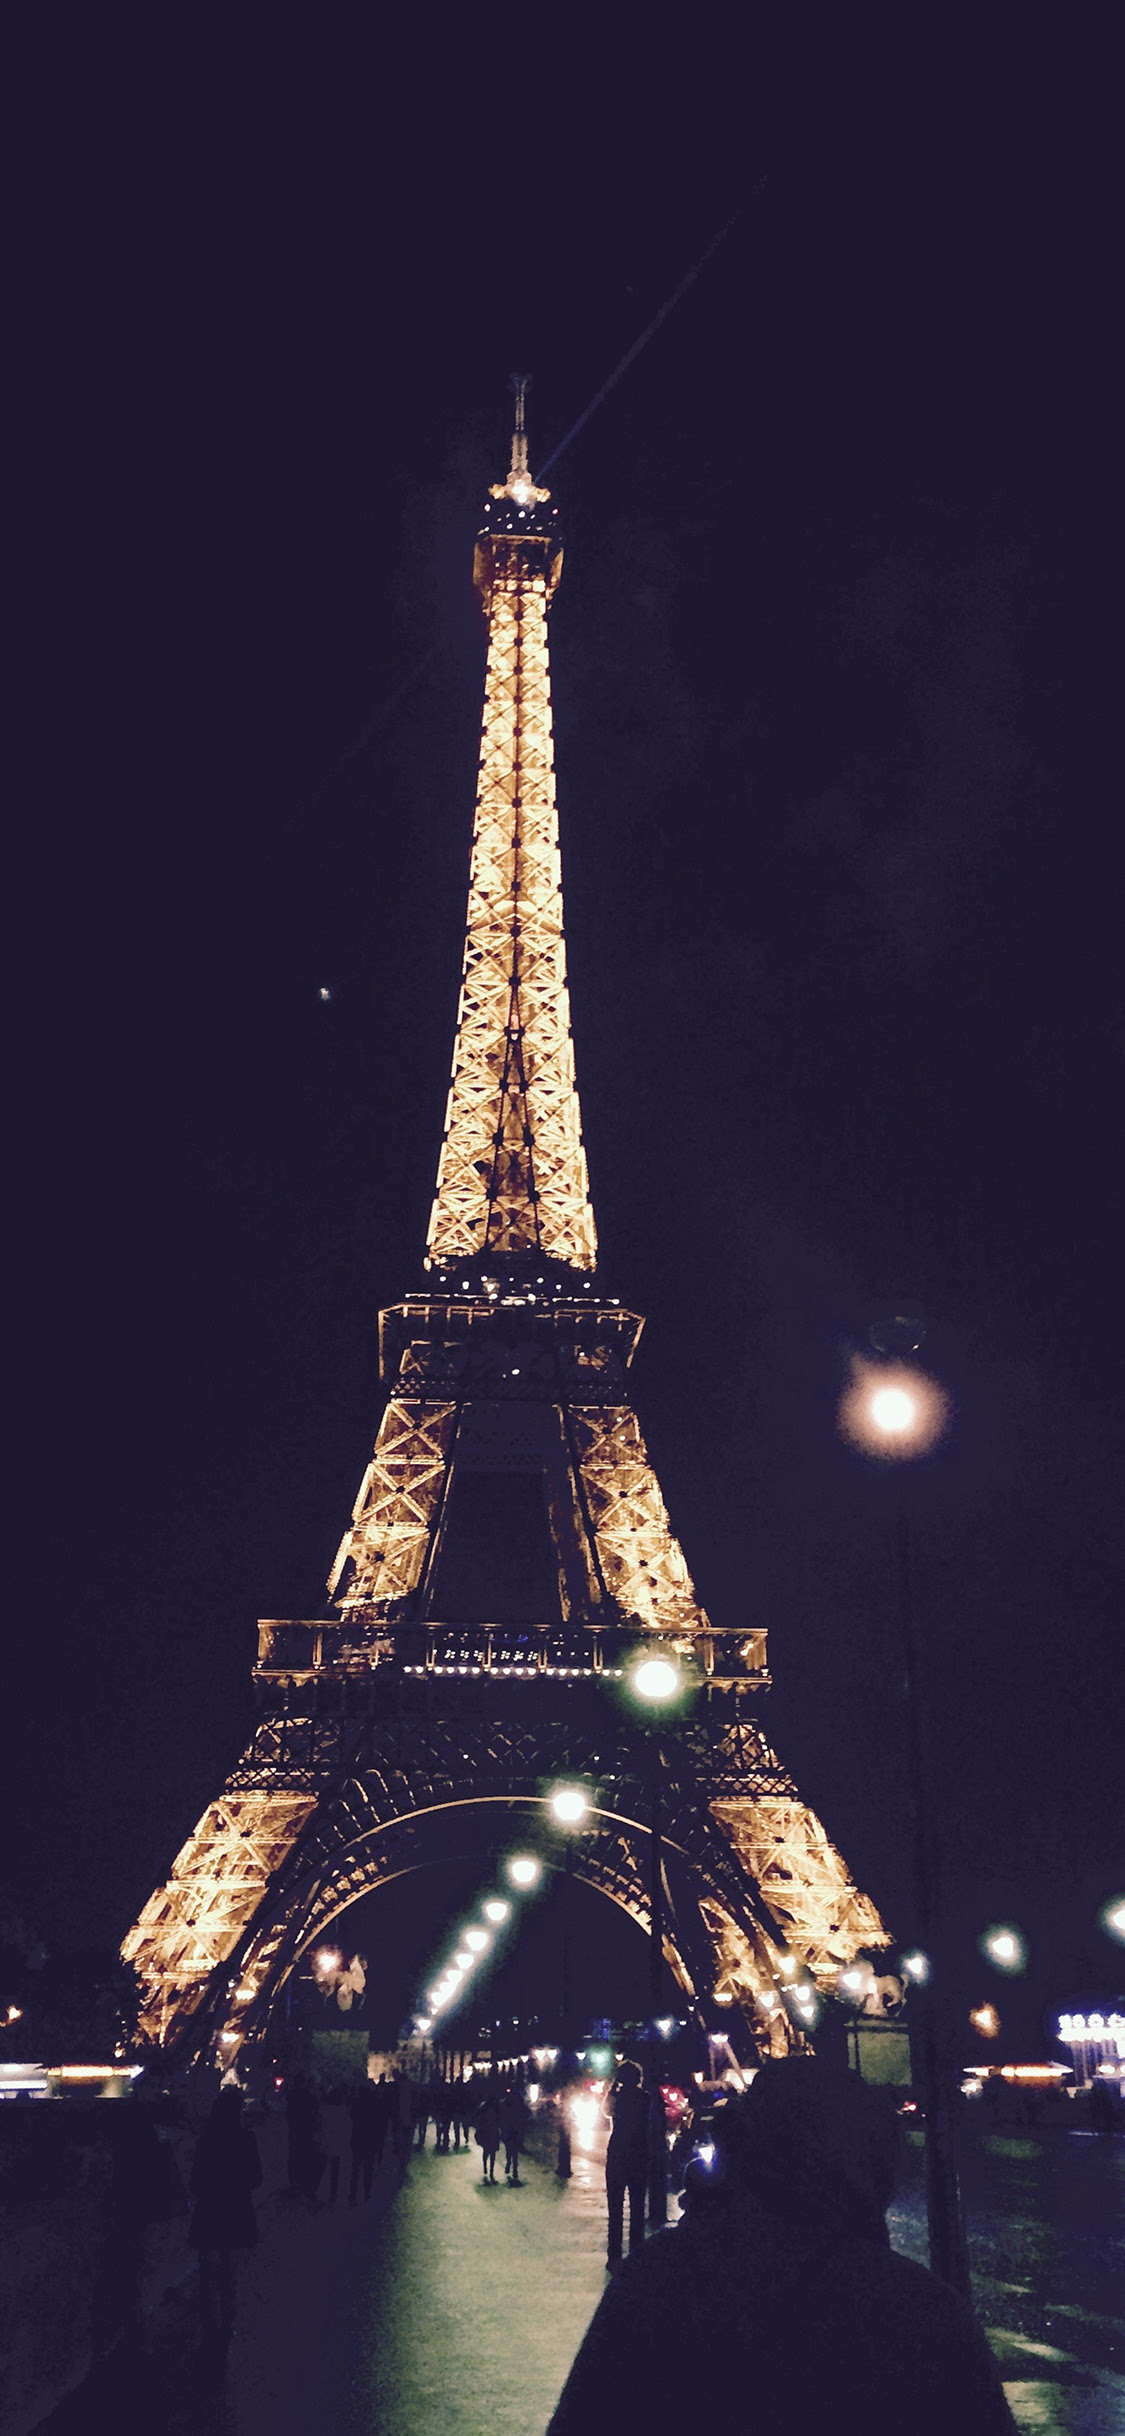 Download 8300 Wallpaper Iphone Paris Foto Paling Keren